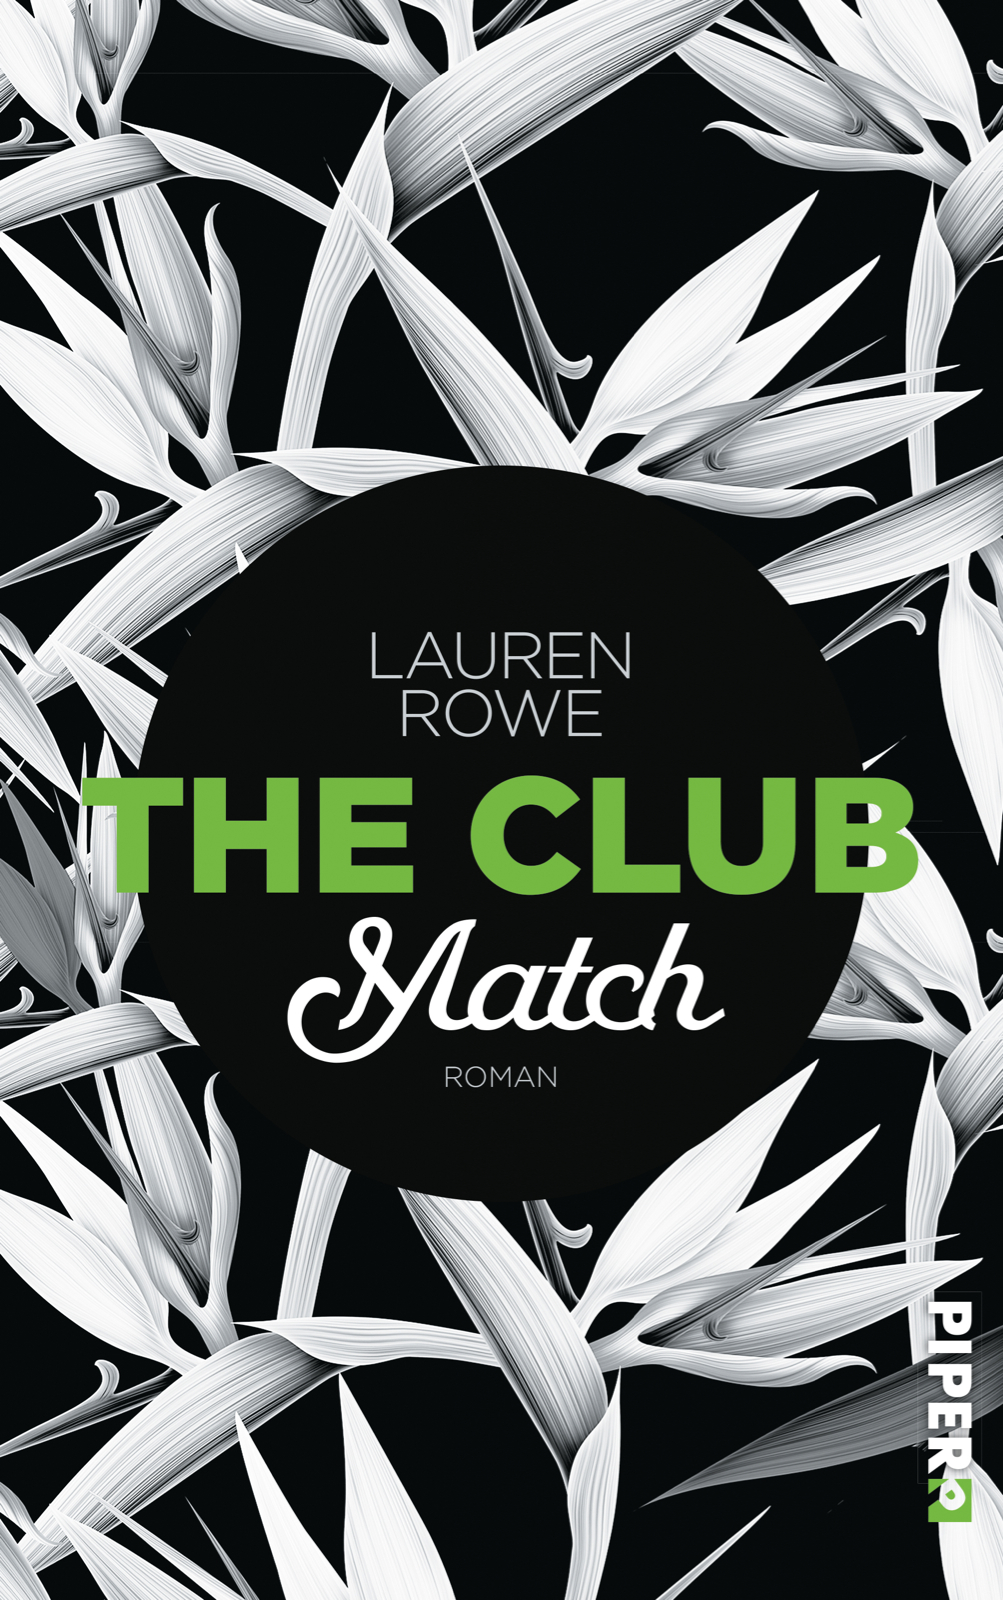 Lauren Rowe The Club Match Buchcover Piper